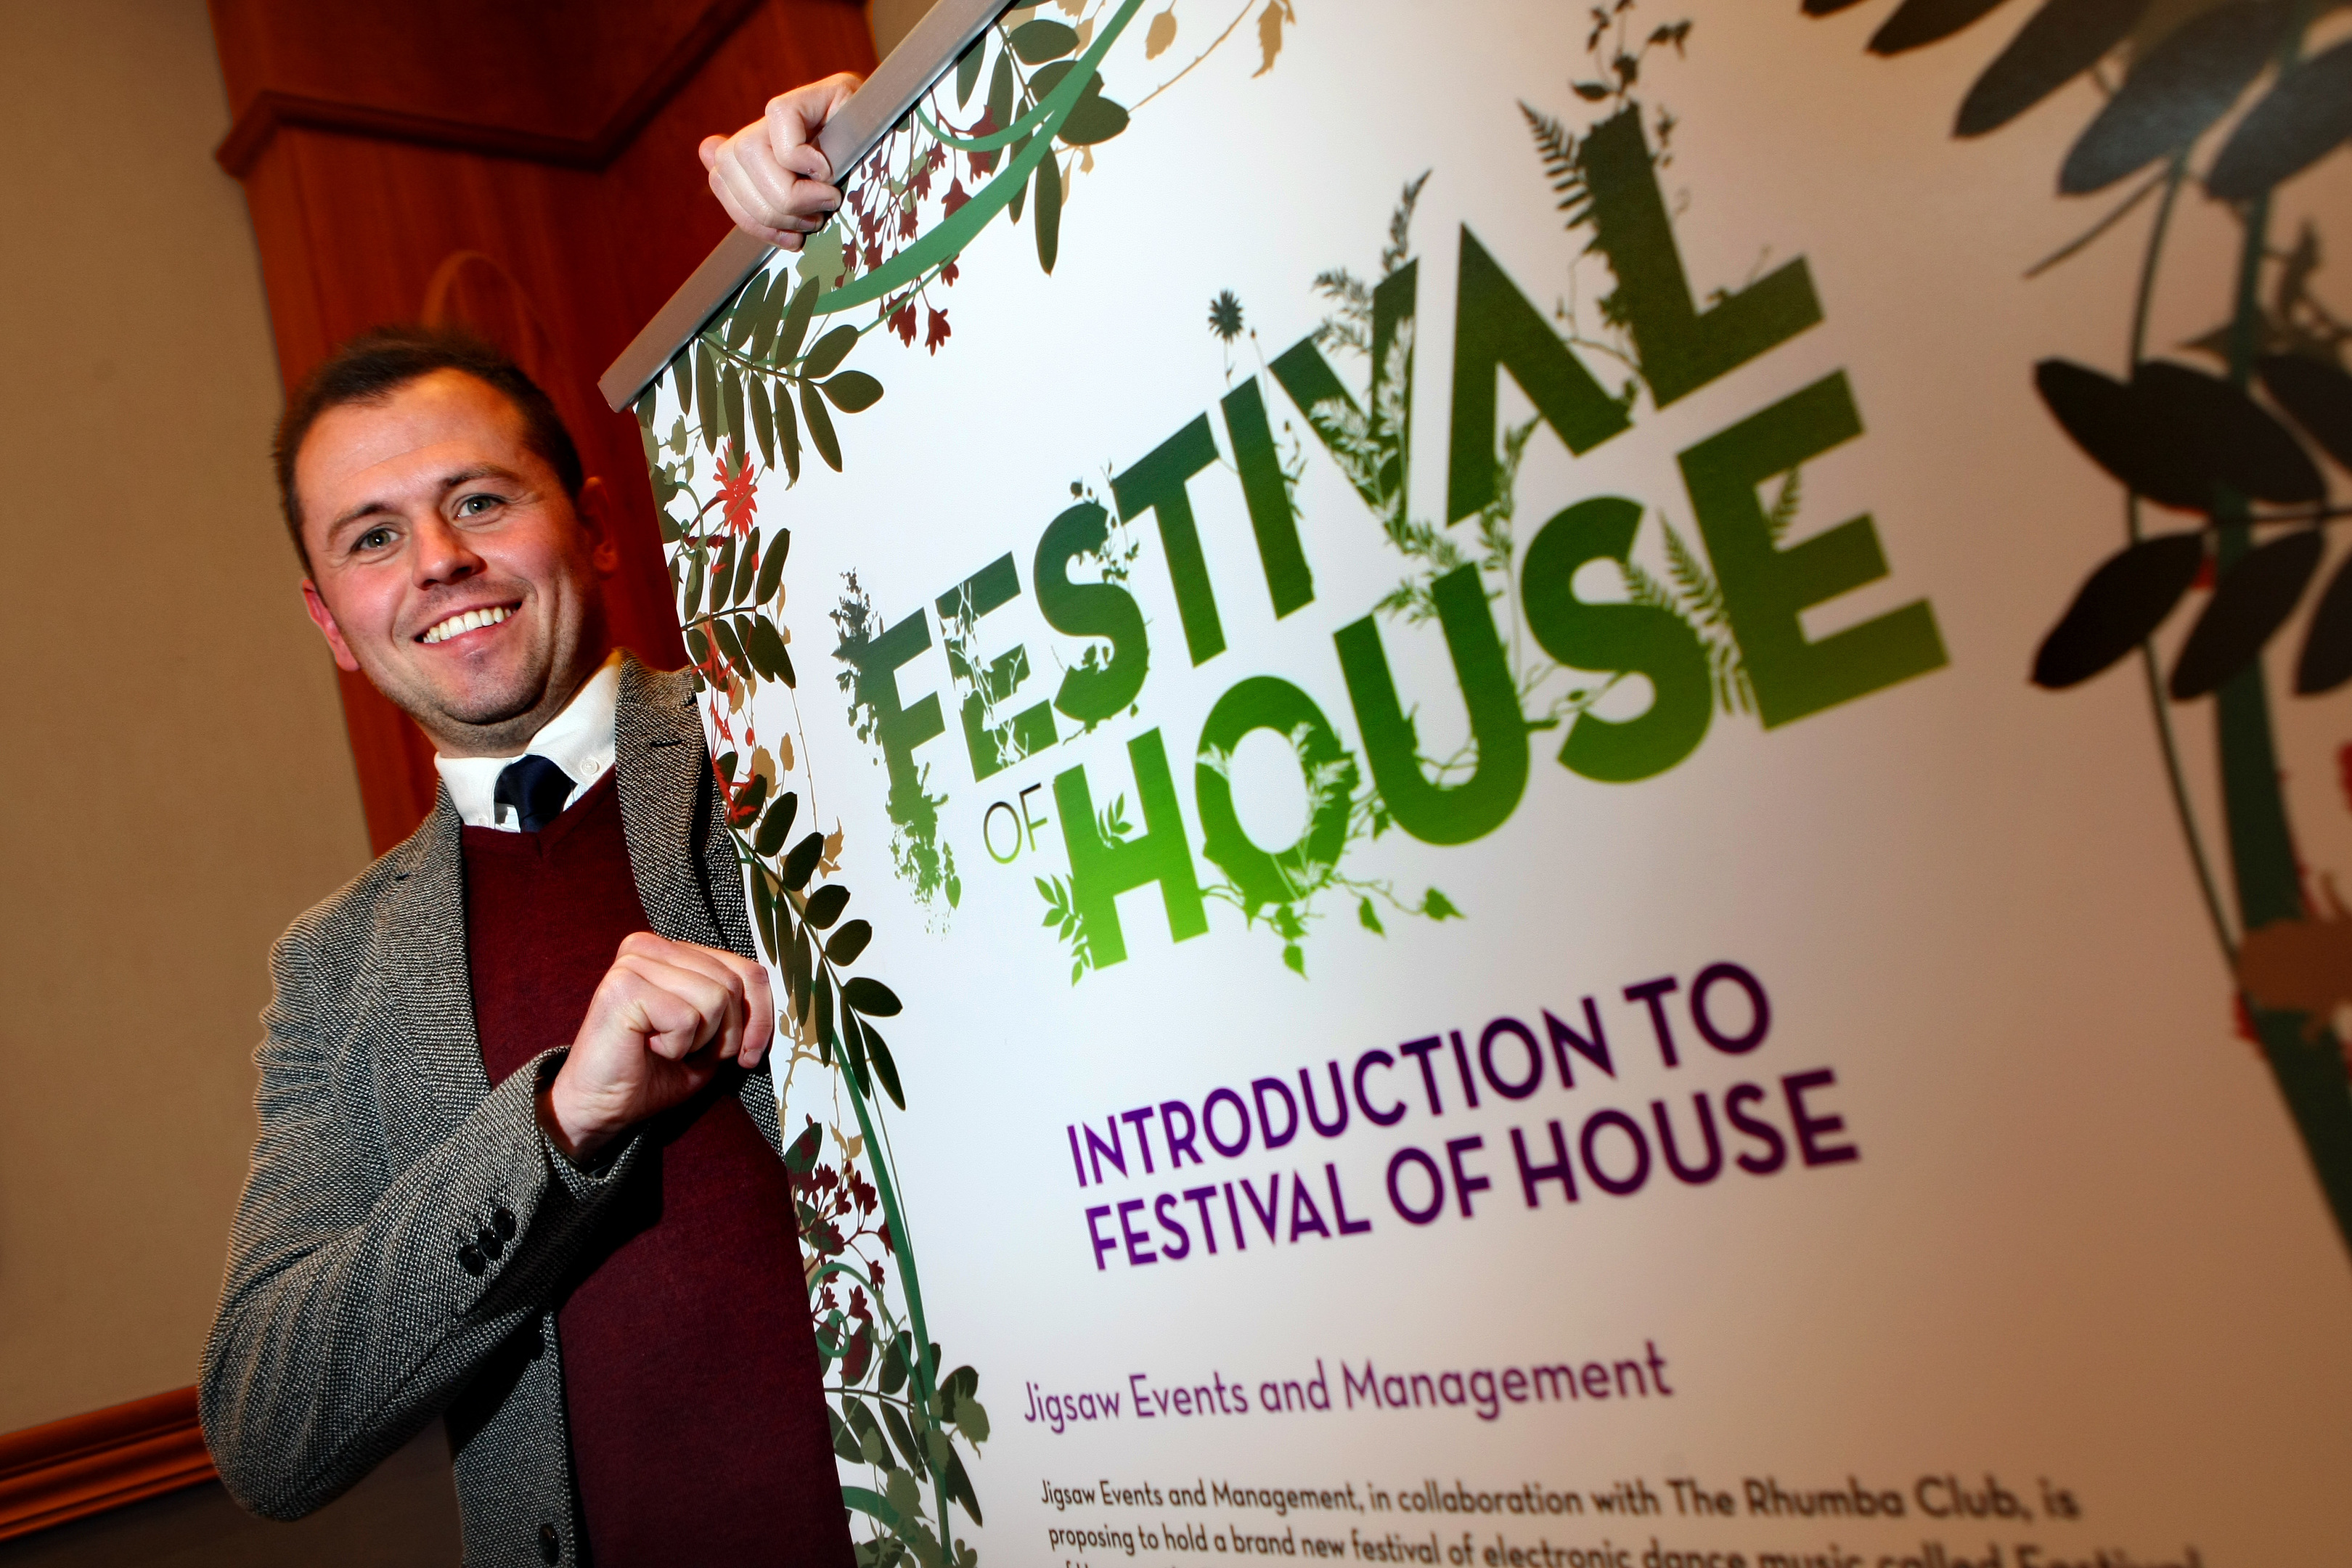 Angus Festival of House director Craig Blyth at a public consultation event in February.